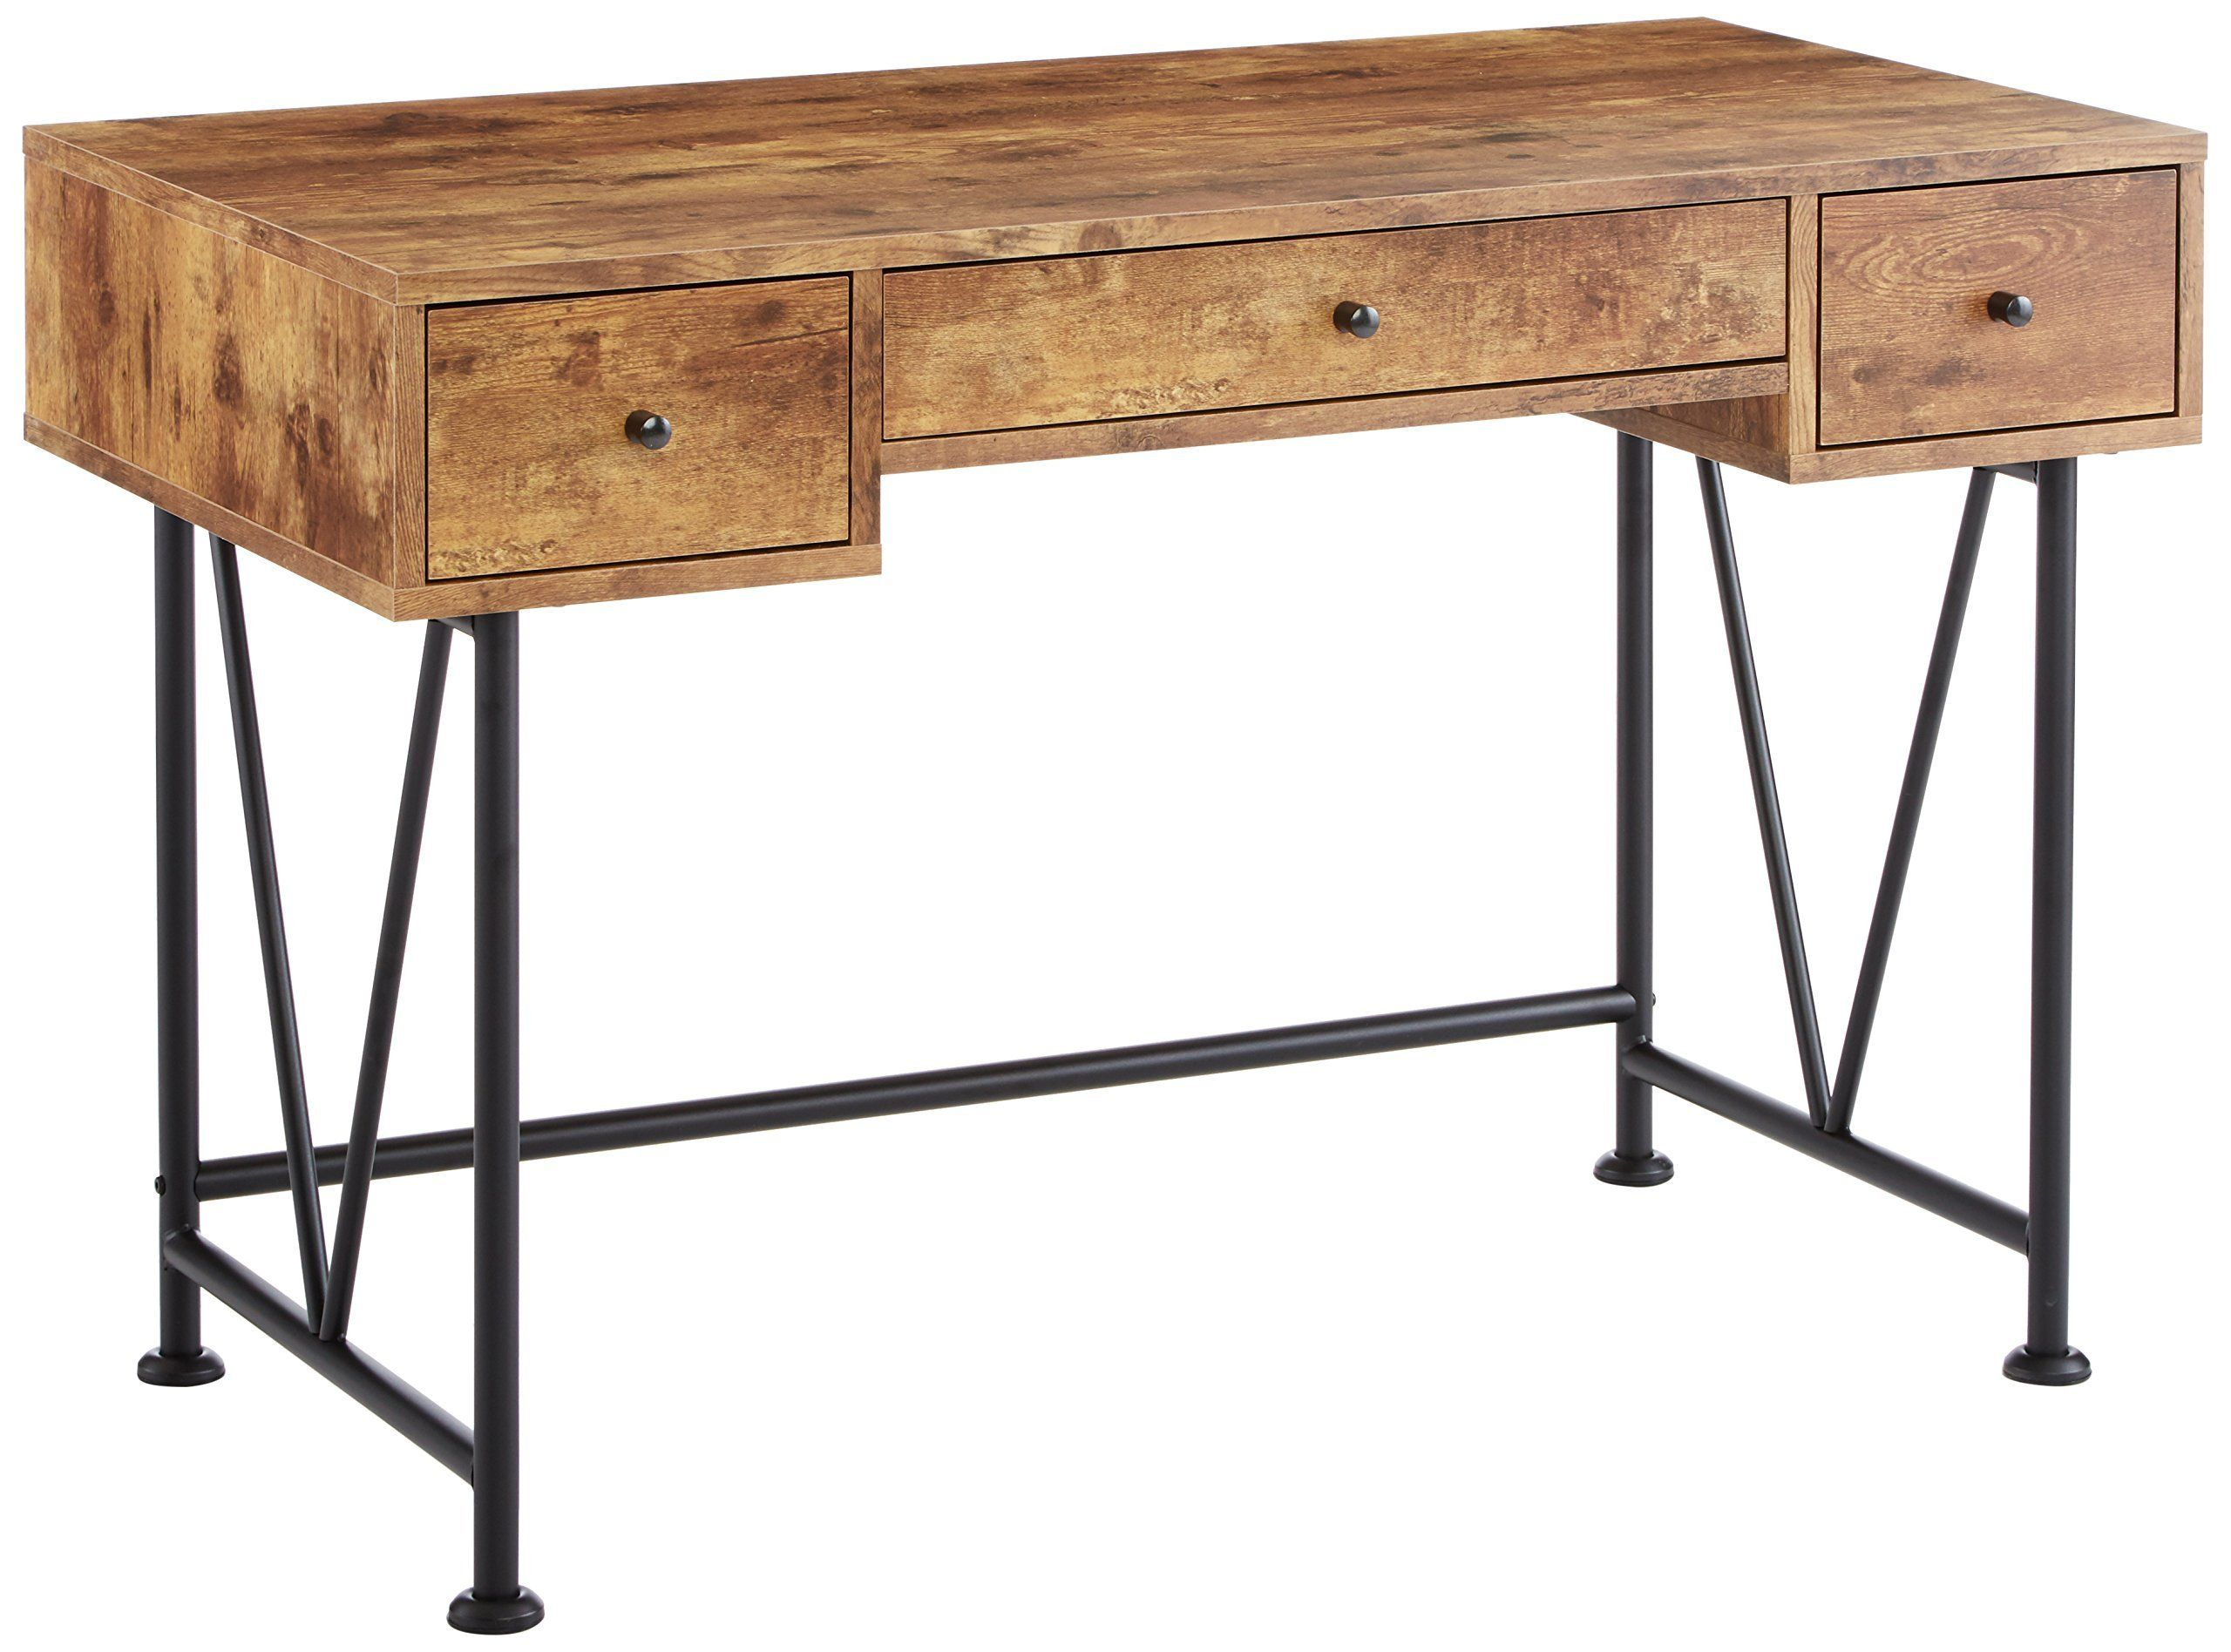 Coaster home furnishings analiese modern rustic industrial three drawer writing desk antique nutmeg read more at the image link